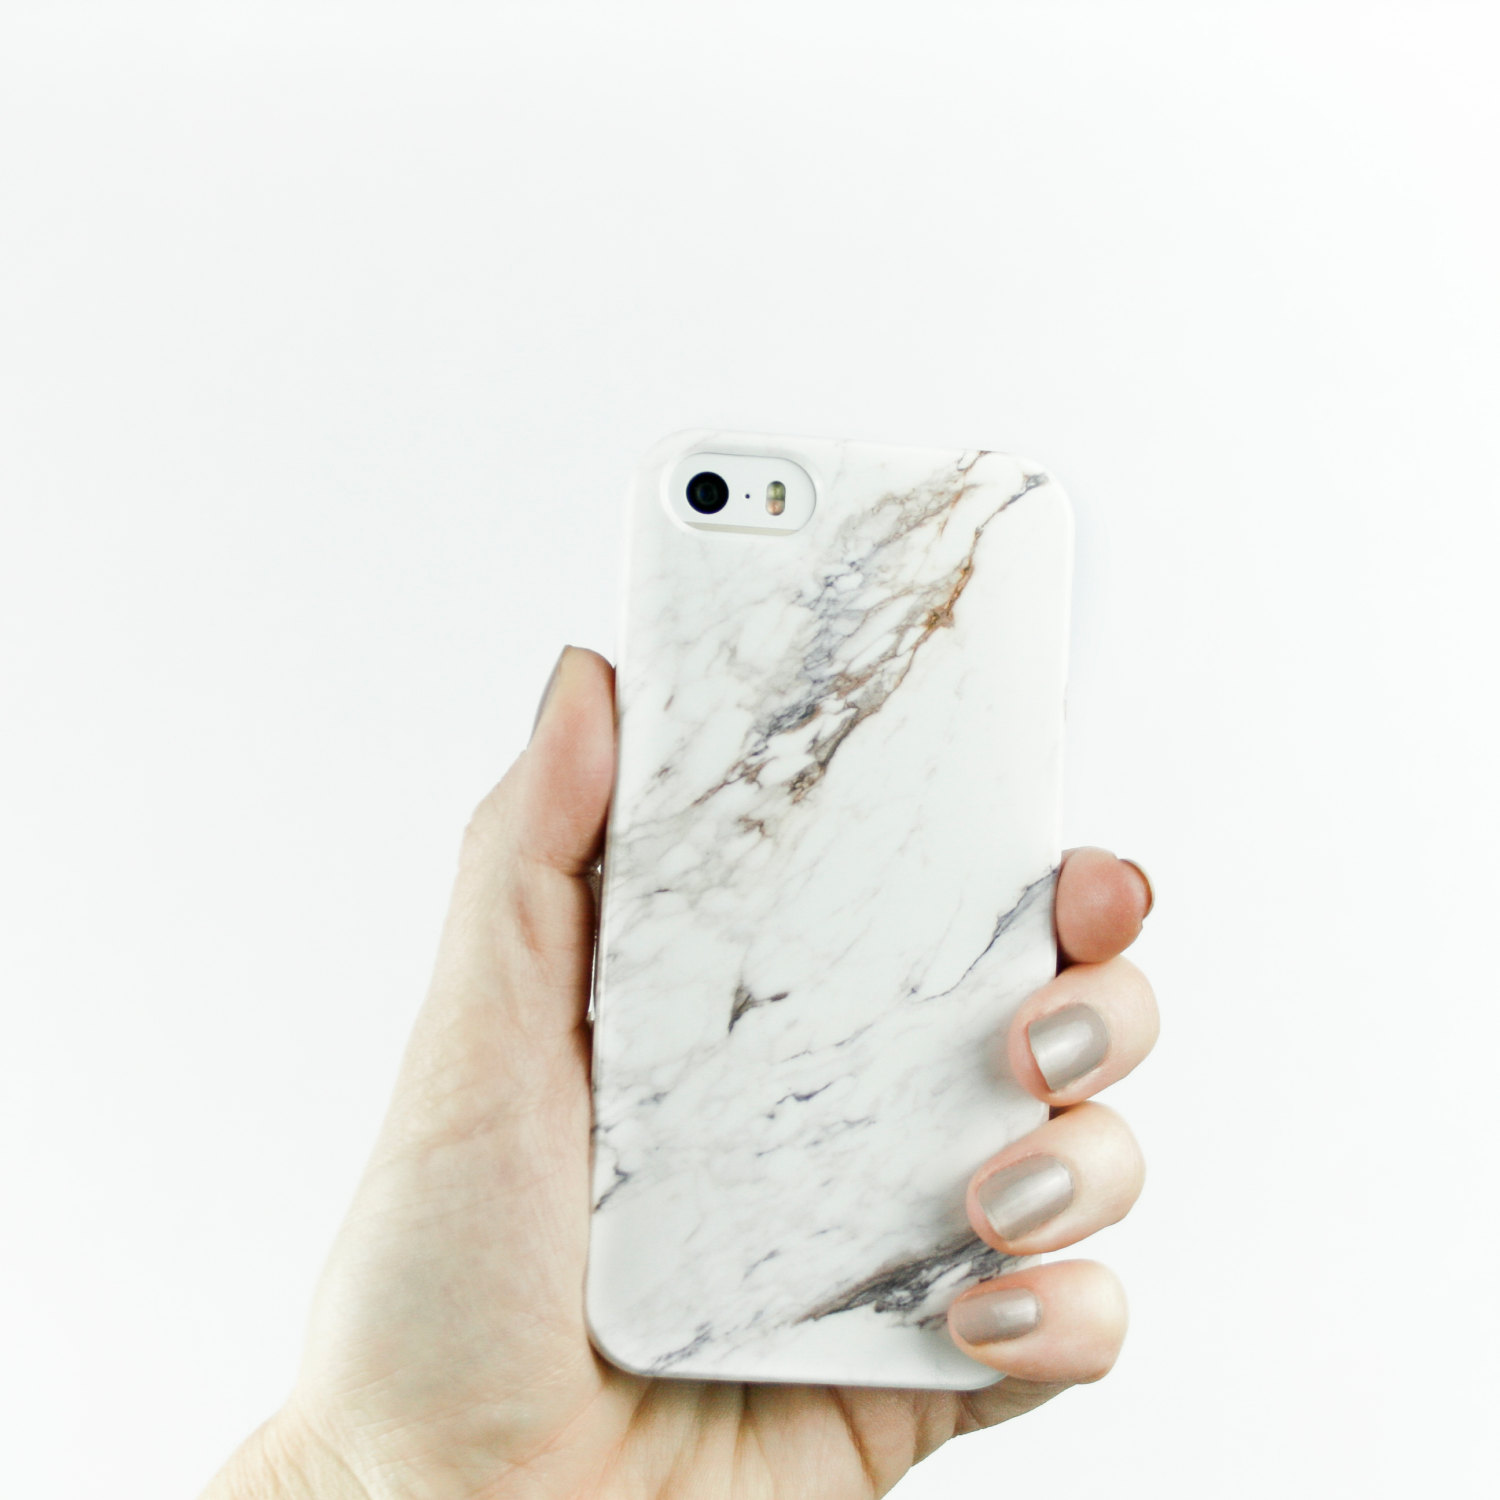 iPhone 6 Plus Case Marble iPhone 6S Case, Marble iPhone 5S, White Marble iPhone Case, iPhone 5C Case,